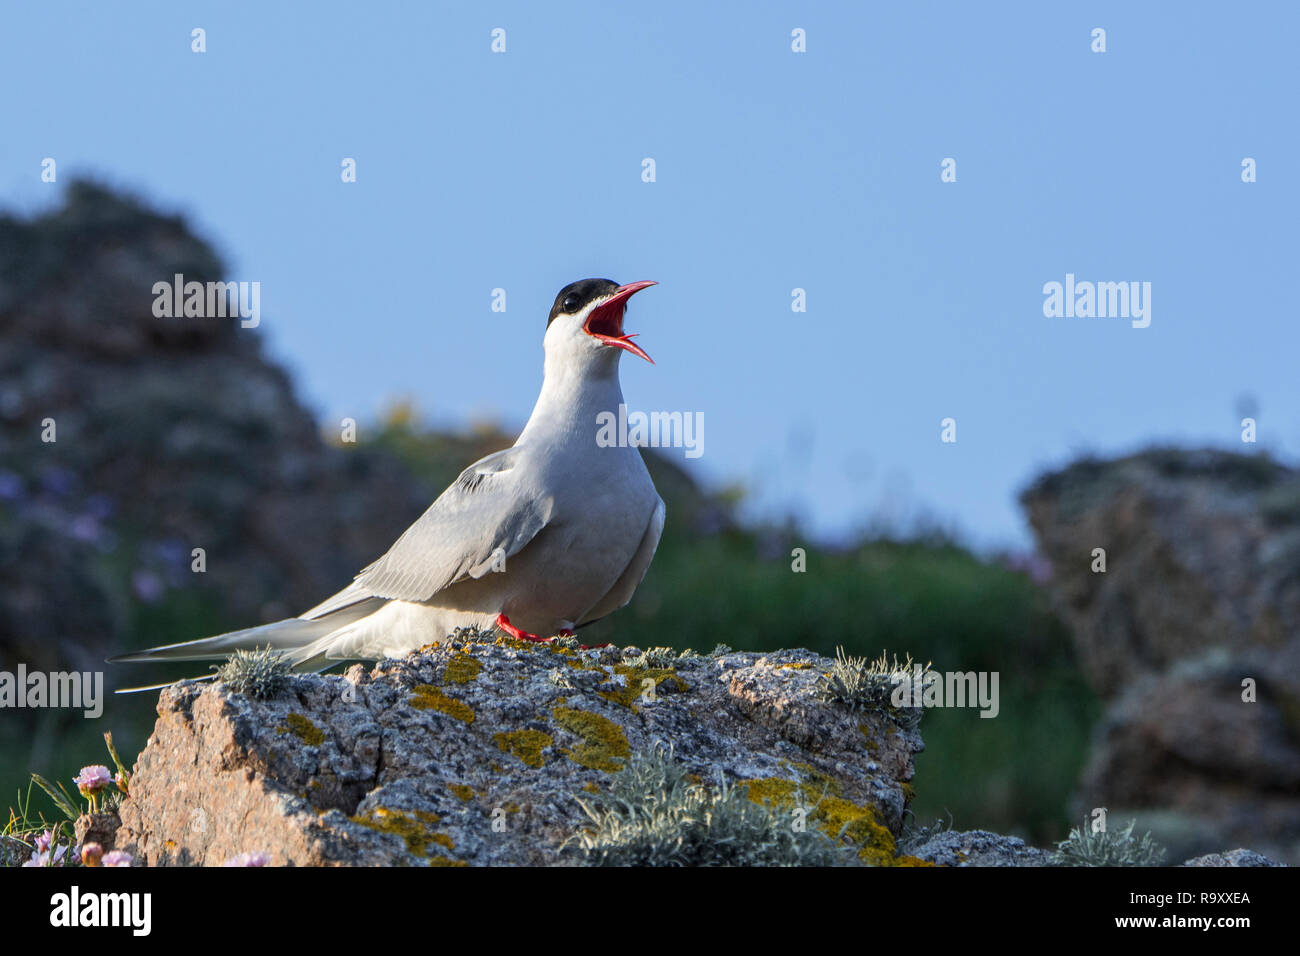 Arctic tern (Sterna paradisaea) calling from rock on the shore, Scotland, UK - Stock Image